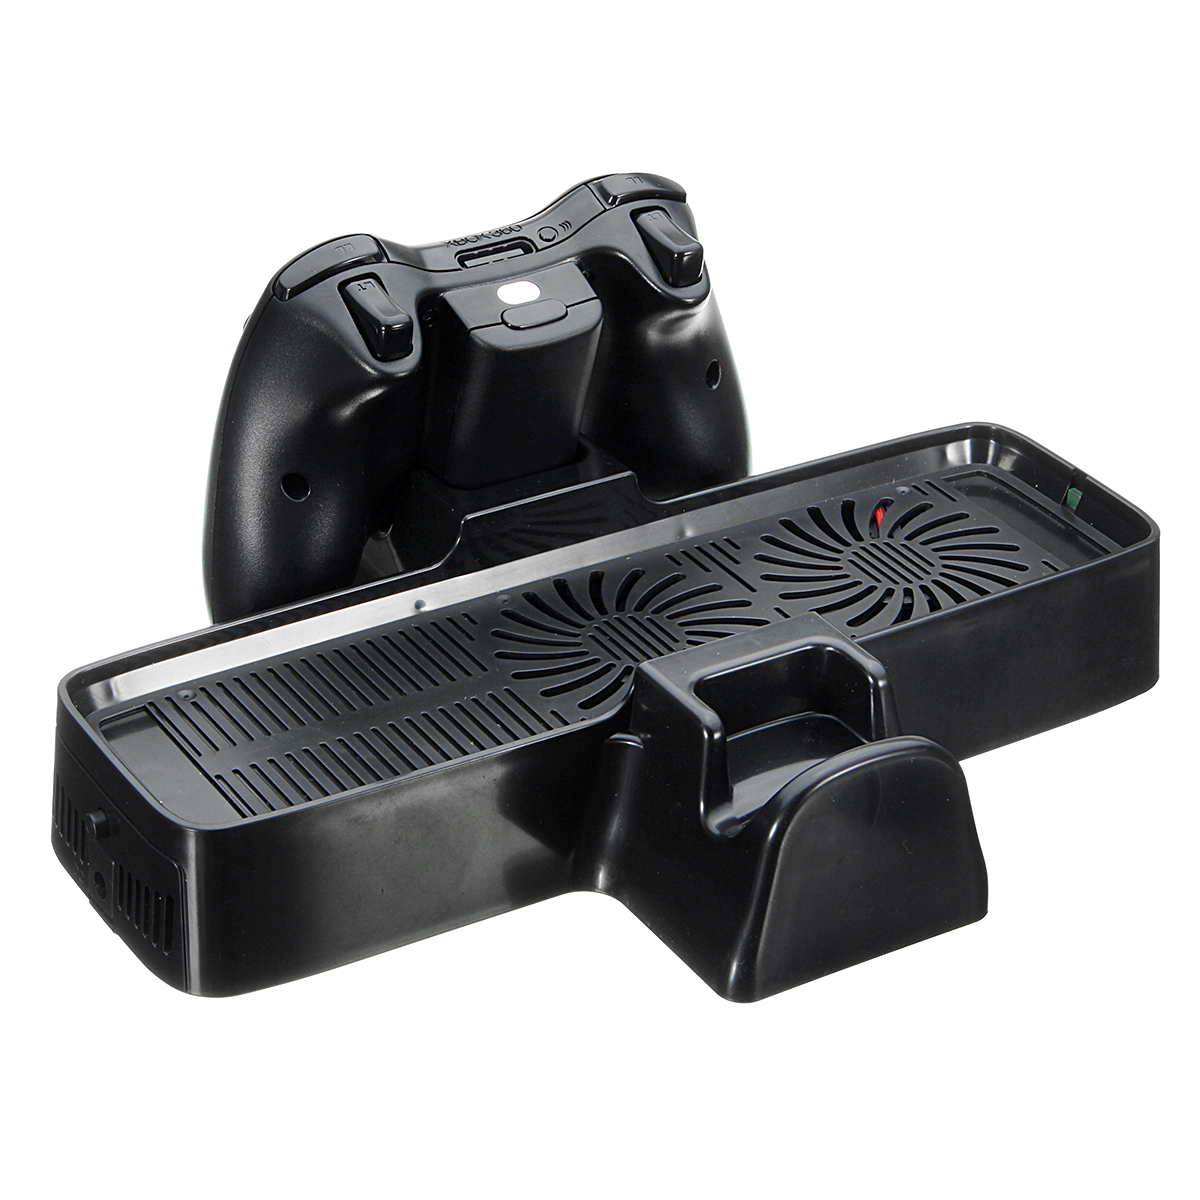 Multifunction 3 in 1 Vertical Charging Dock Station Cooling Fan Stand For Xbox 360